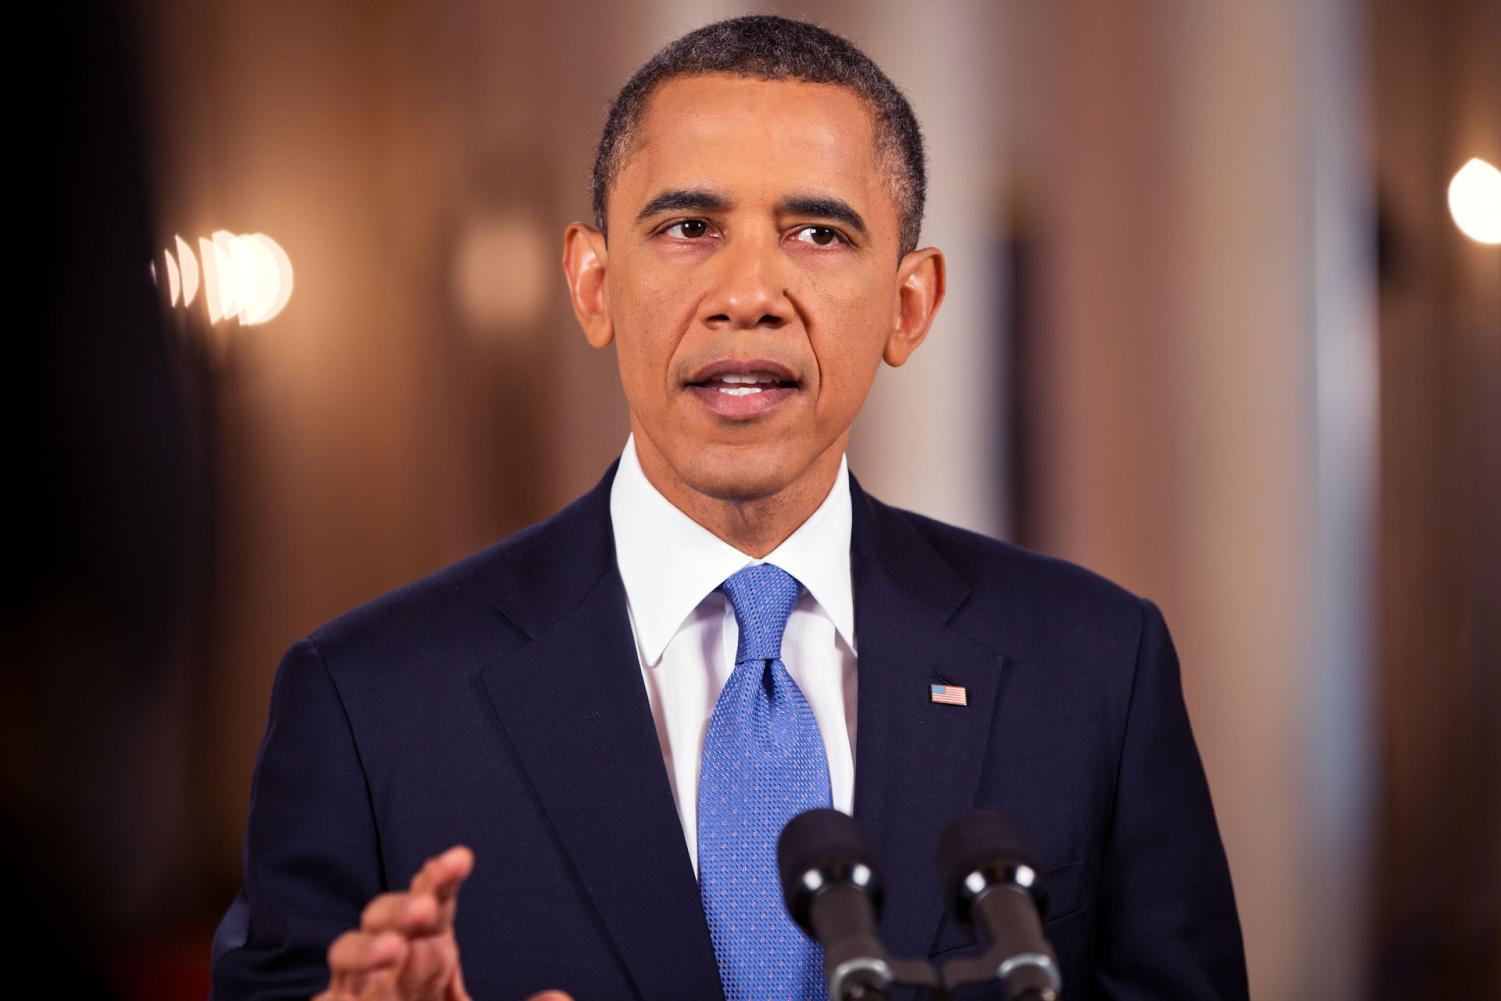 Obama spoke in an interview with Yara Shadidi about the current issues with today's